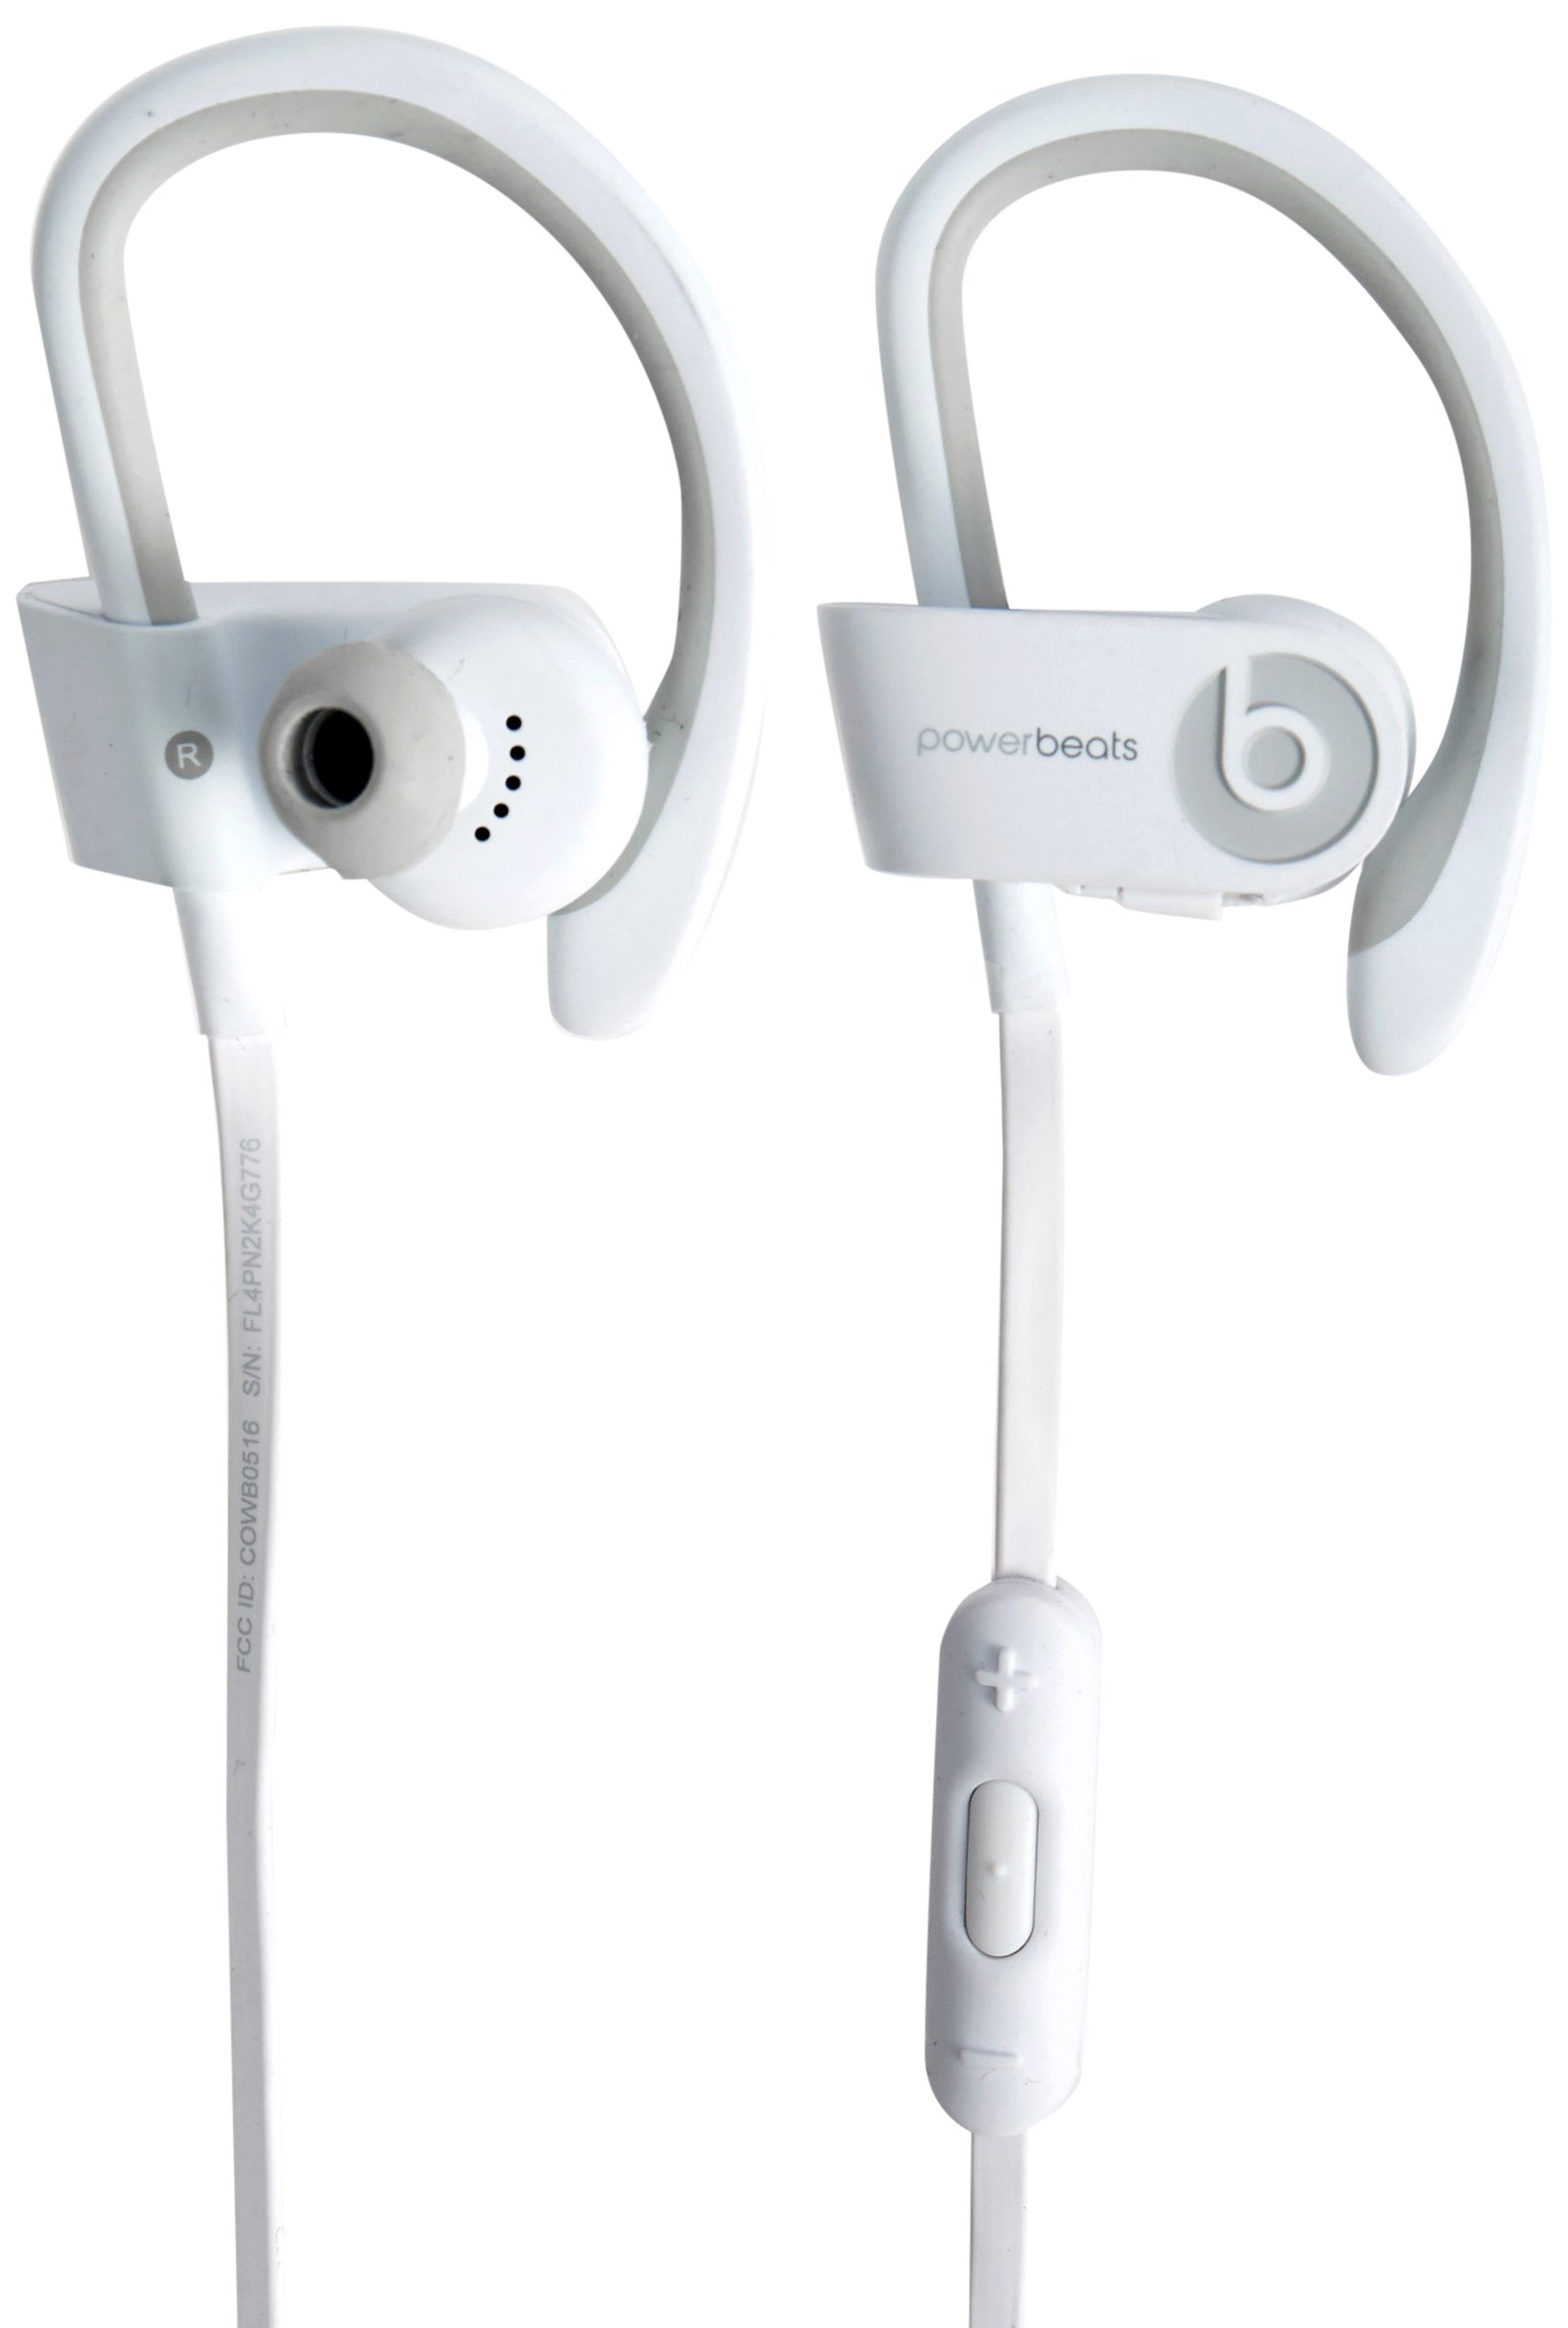 Powerbeats 2 Wireless In-Ear Headphone - White by Beats